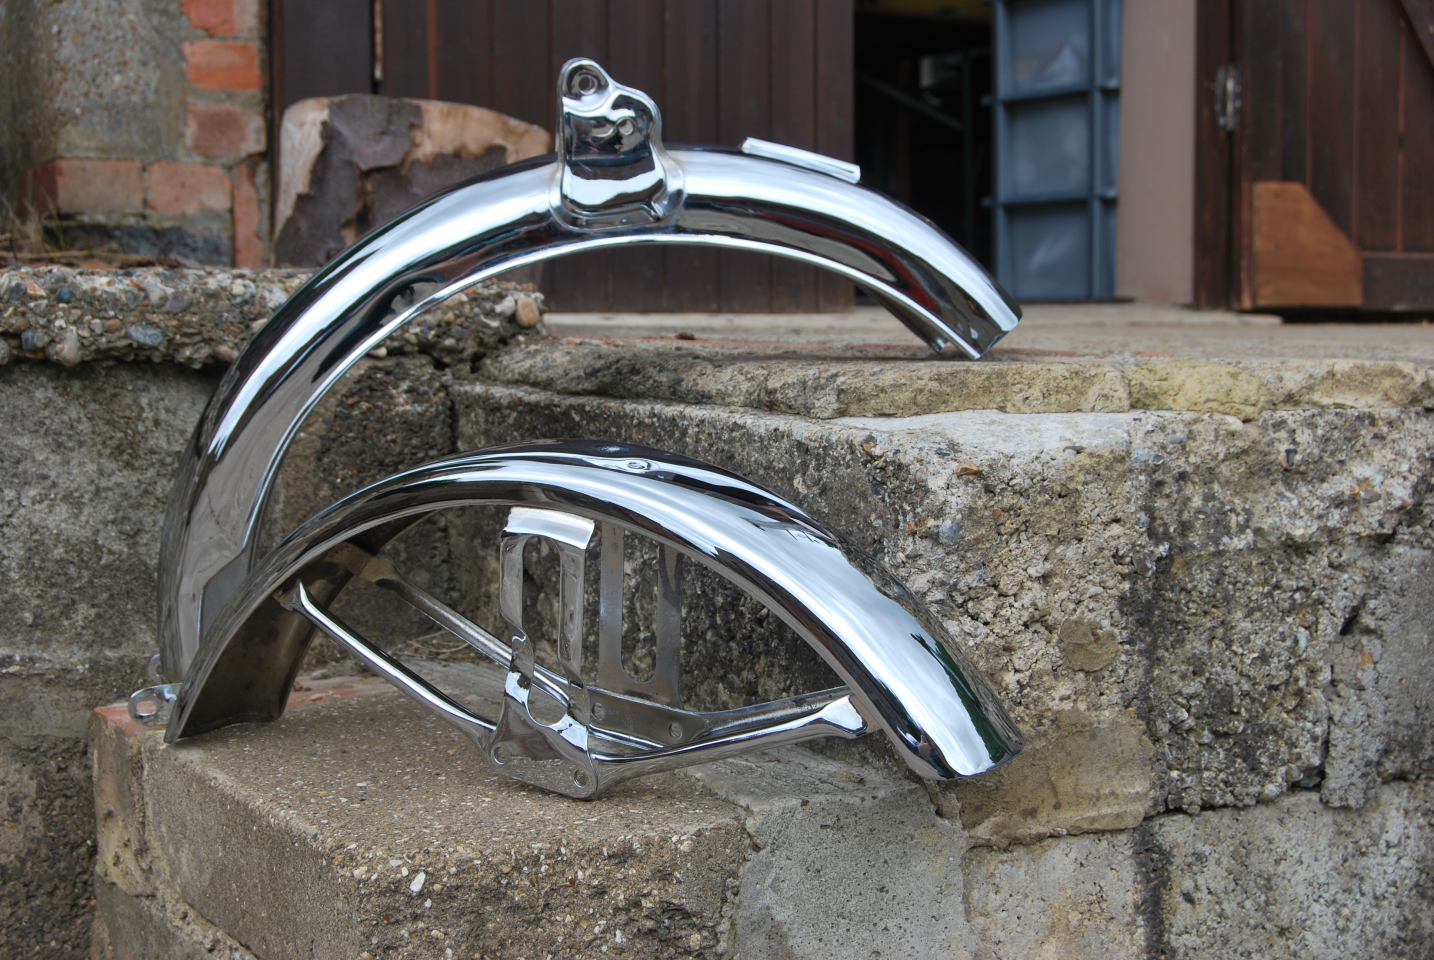 Chrome plating Swansea wales - Ashford Chroming (Swansea wales)